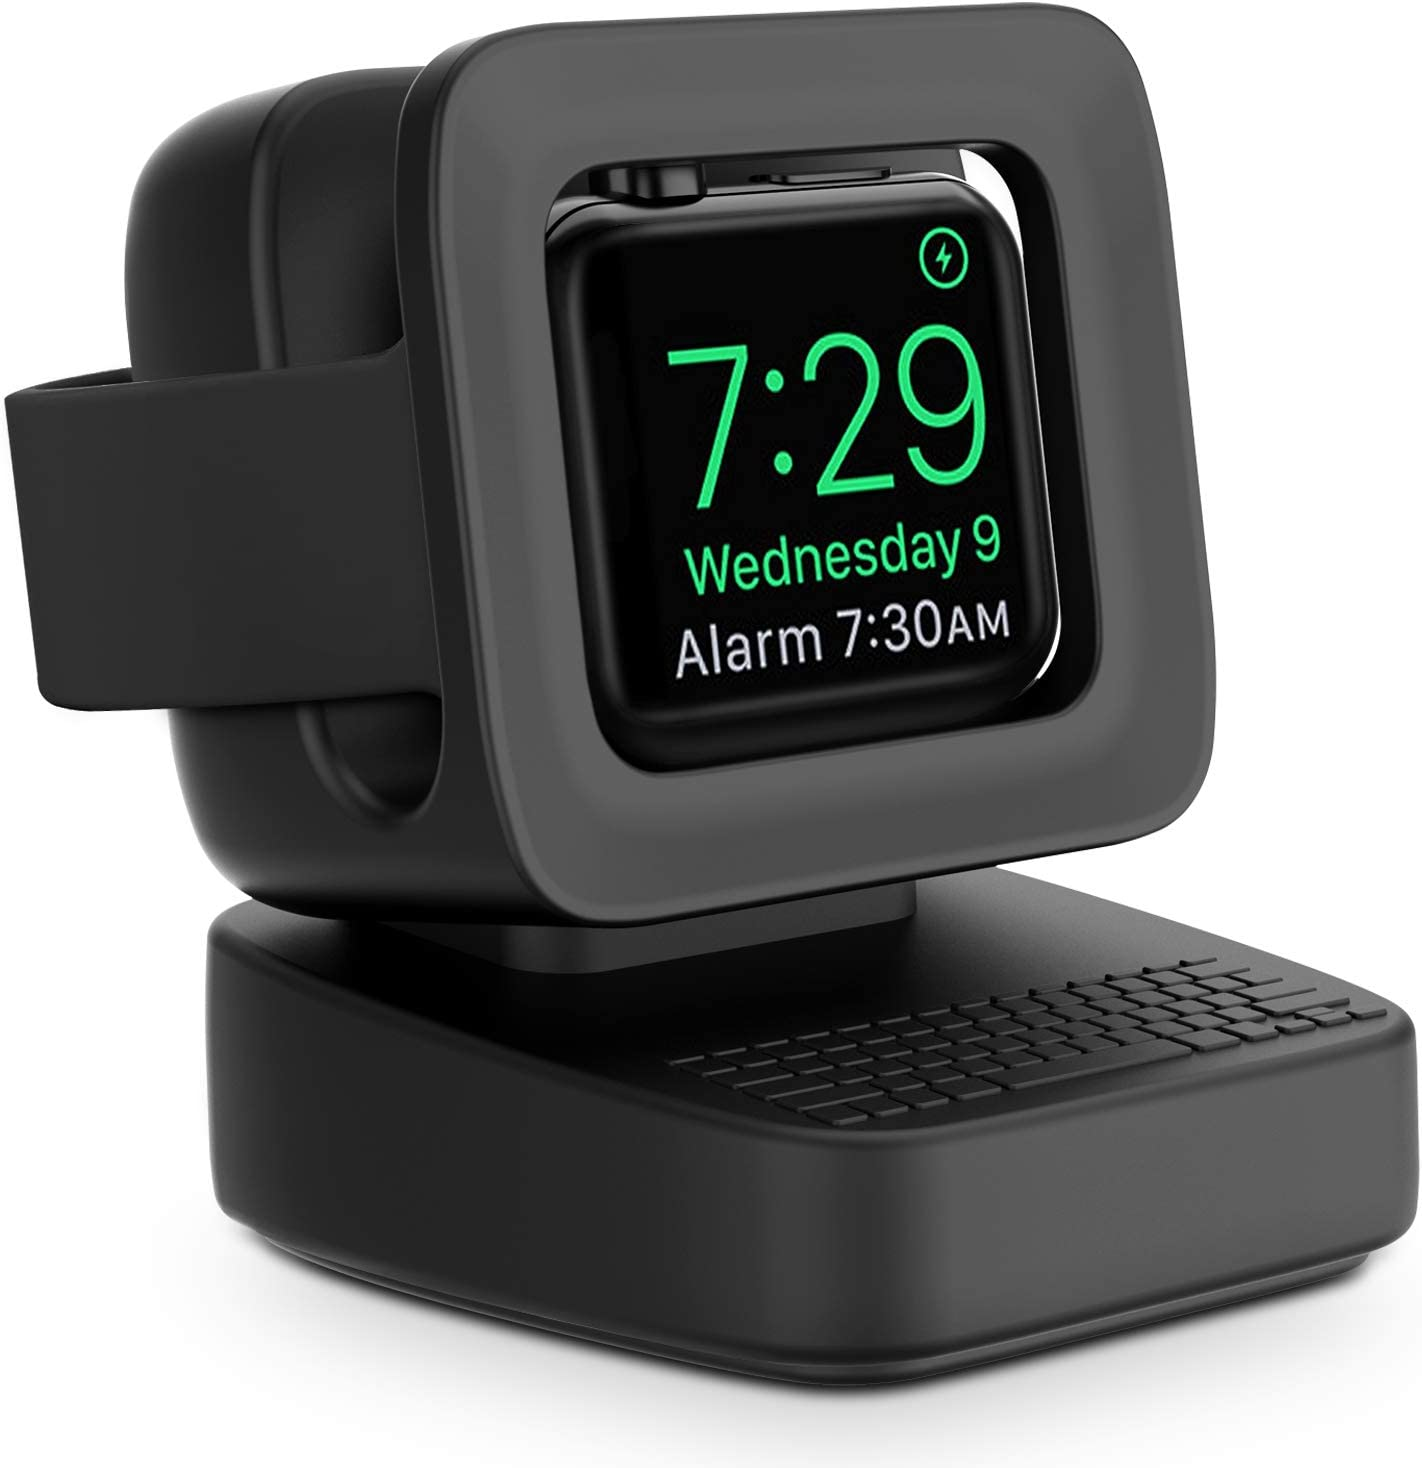 Compatible with Apple Watch Charger Stand, MAPUCE Apple Watch Charging Station for iWatch Stand Charging Dock Silicone for iWatch Series 6 SE 5 4 3 2 1, Supports Nightstand Mode(Black)